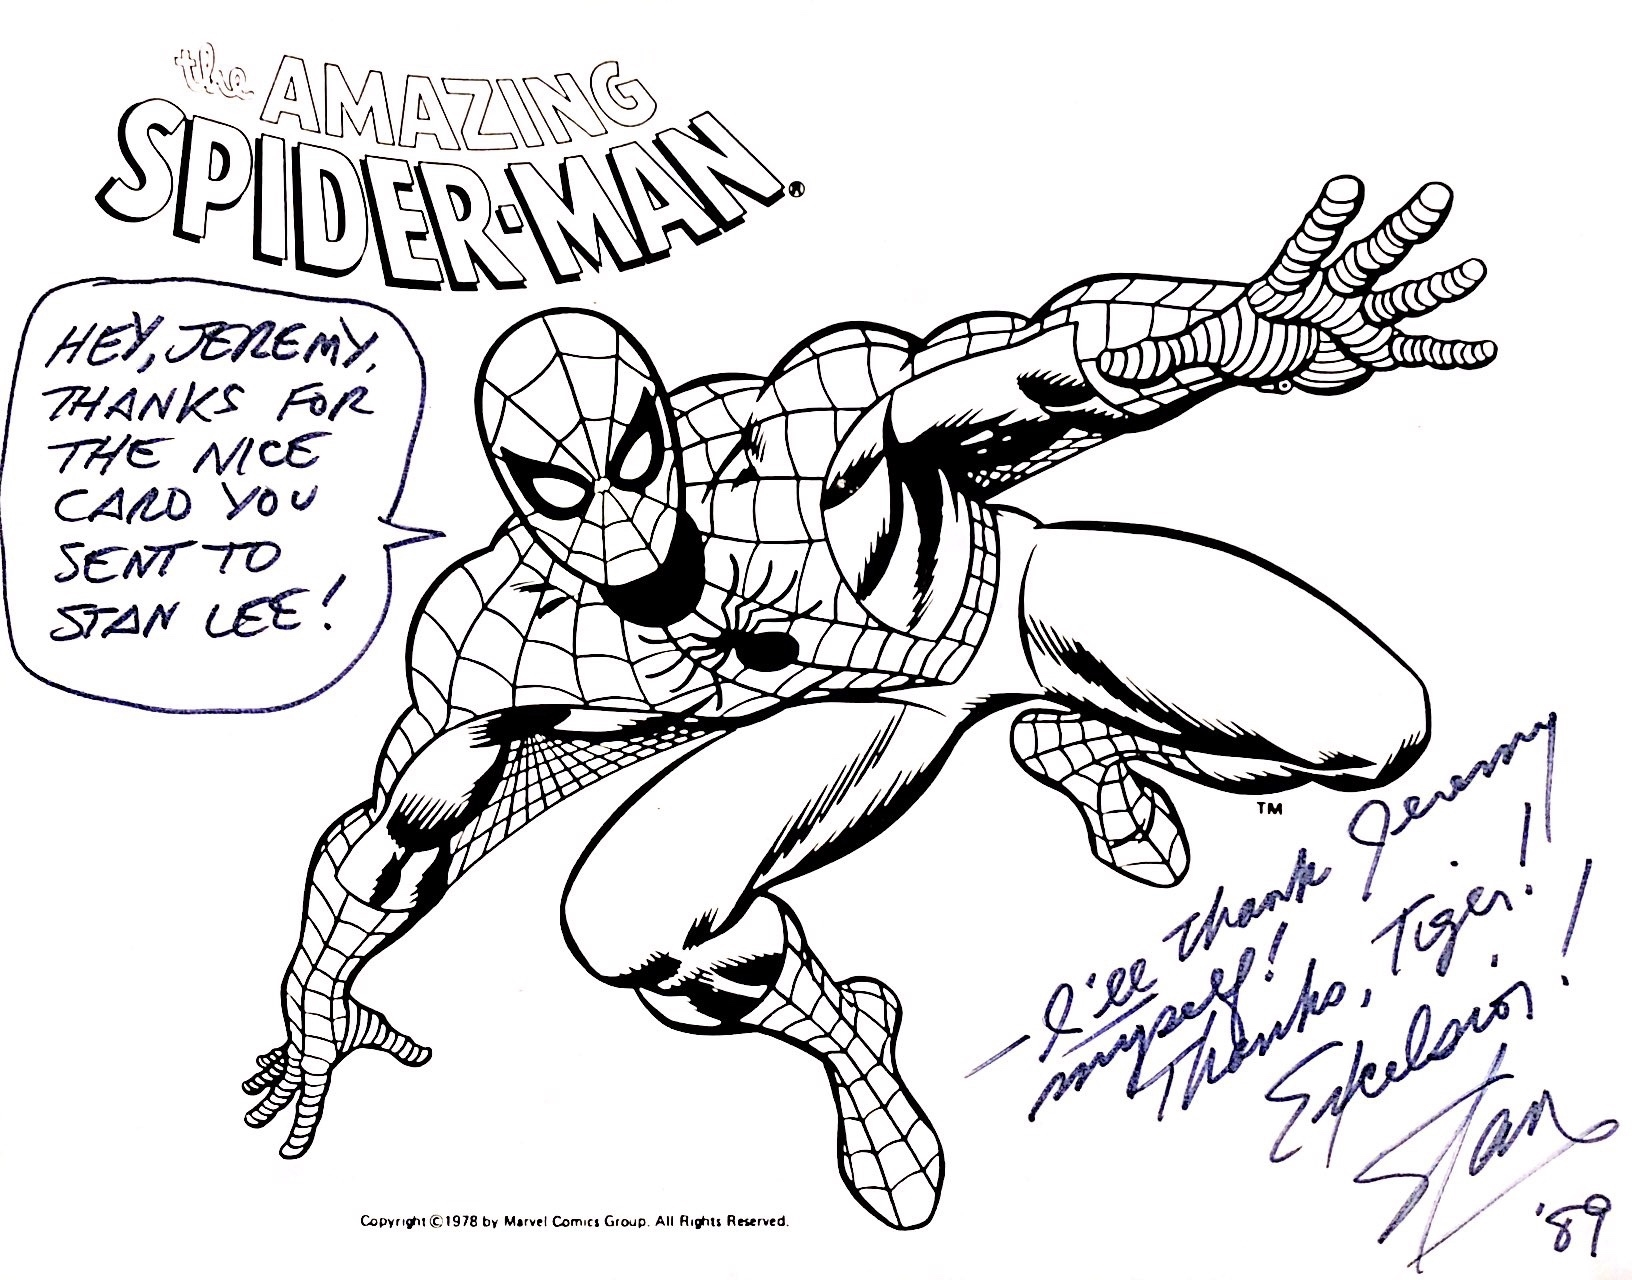 e2711e04678 Thank you note from stan lee in jeremy radisichs stan lee comic jpg  1632x1280 Thank you